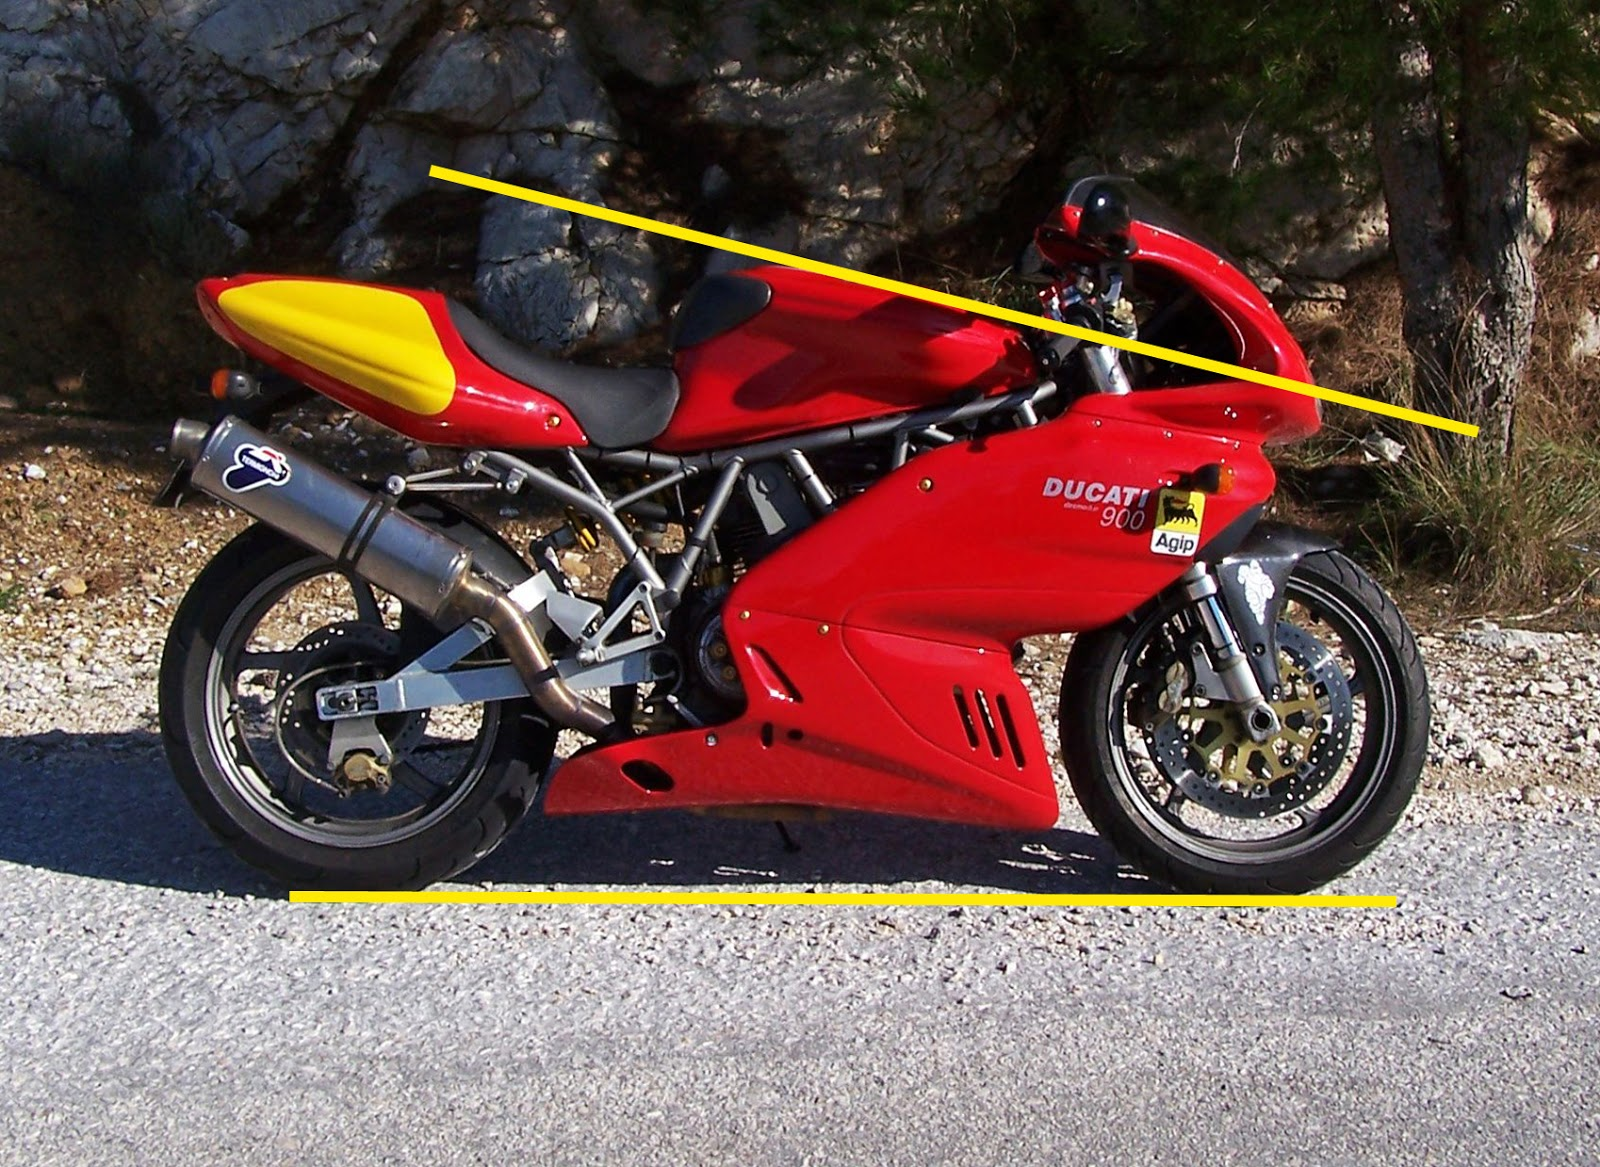 Ducati Tifoso The Ssie Cafe Racer Project